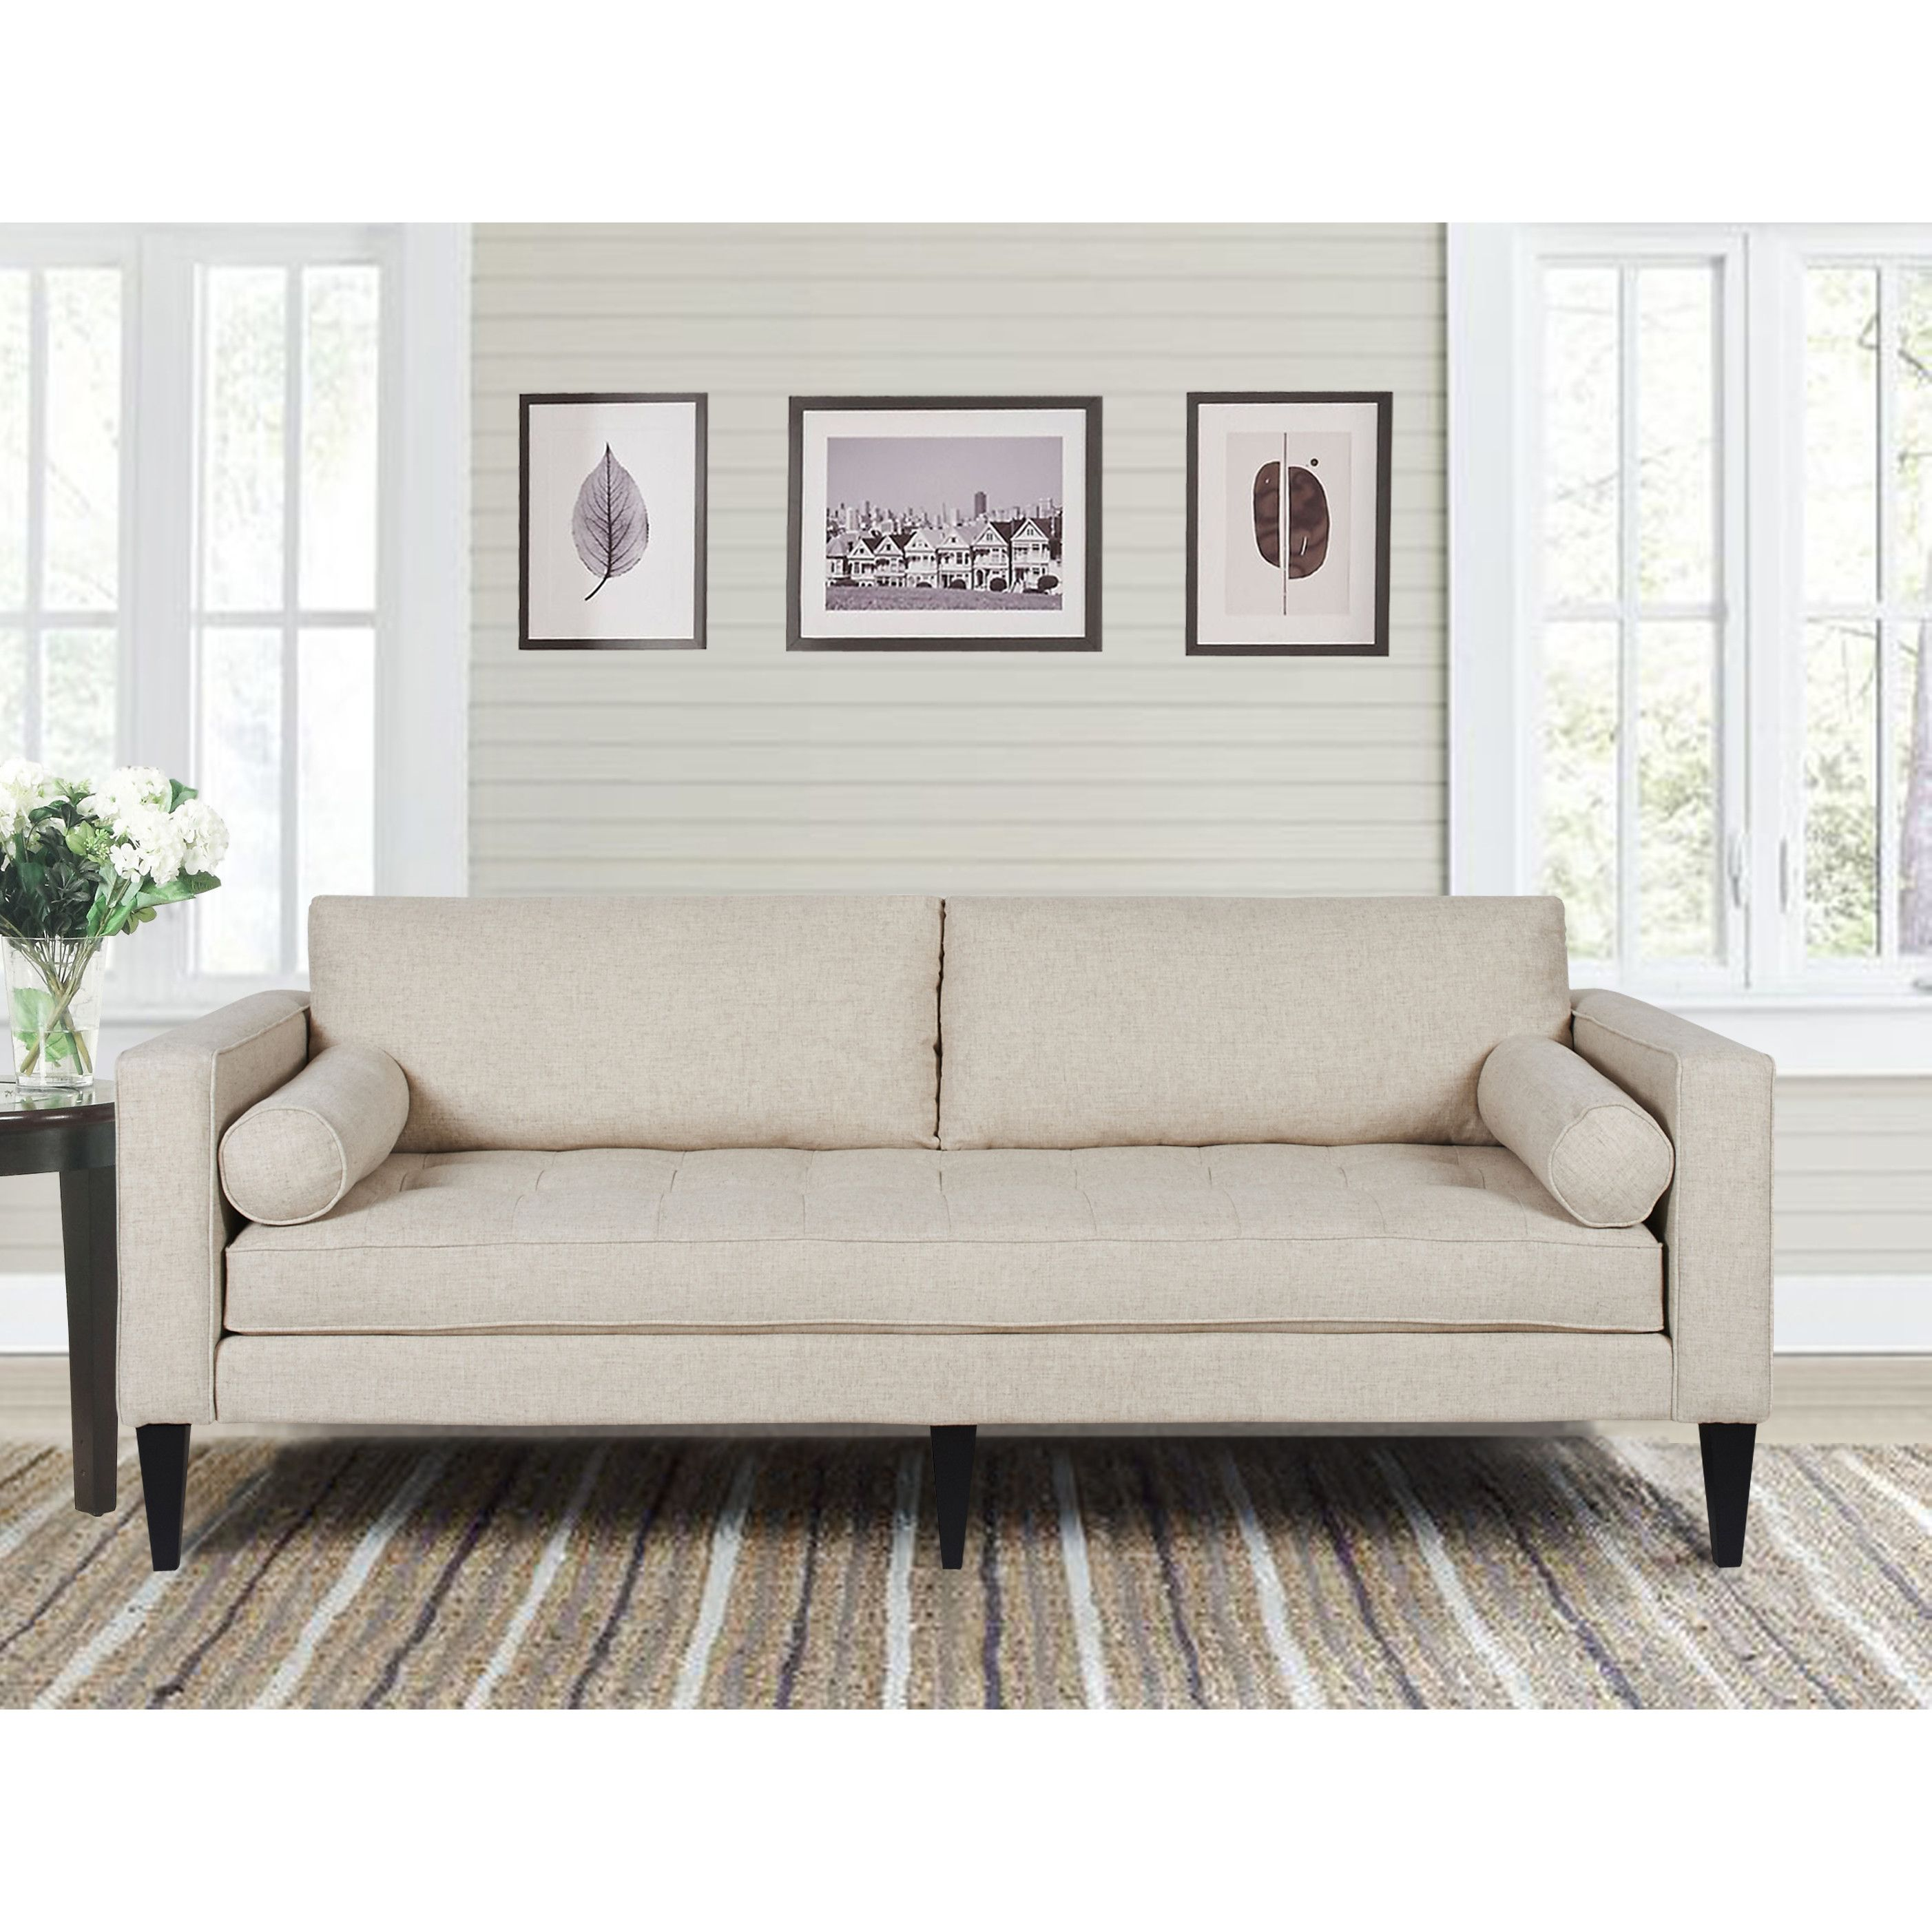 Shop Wayfair for Sofas to match every style and budget. Enjoy Free ...